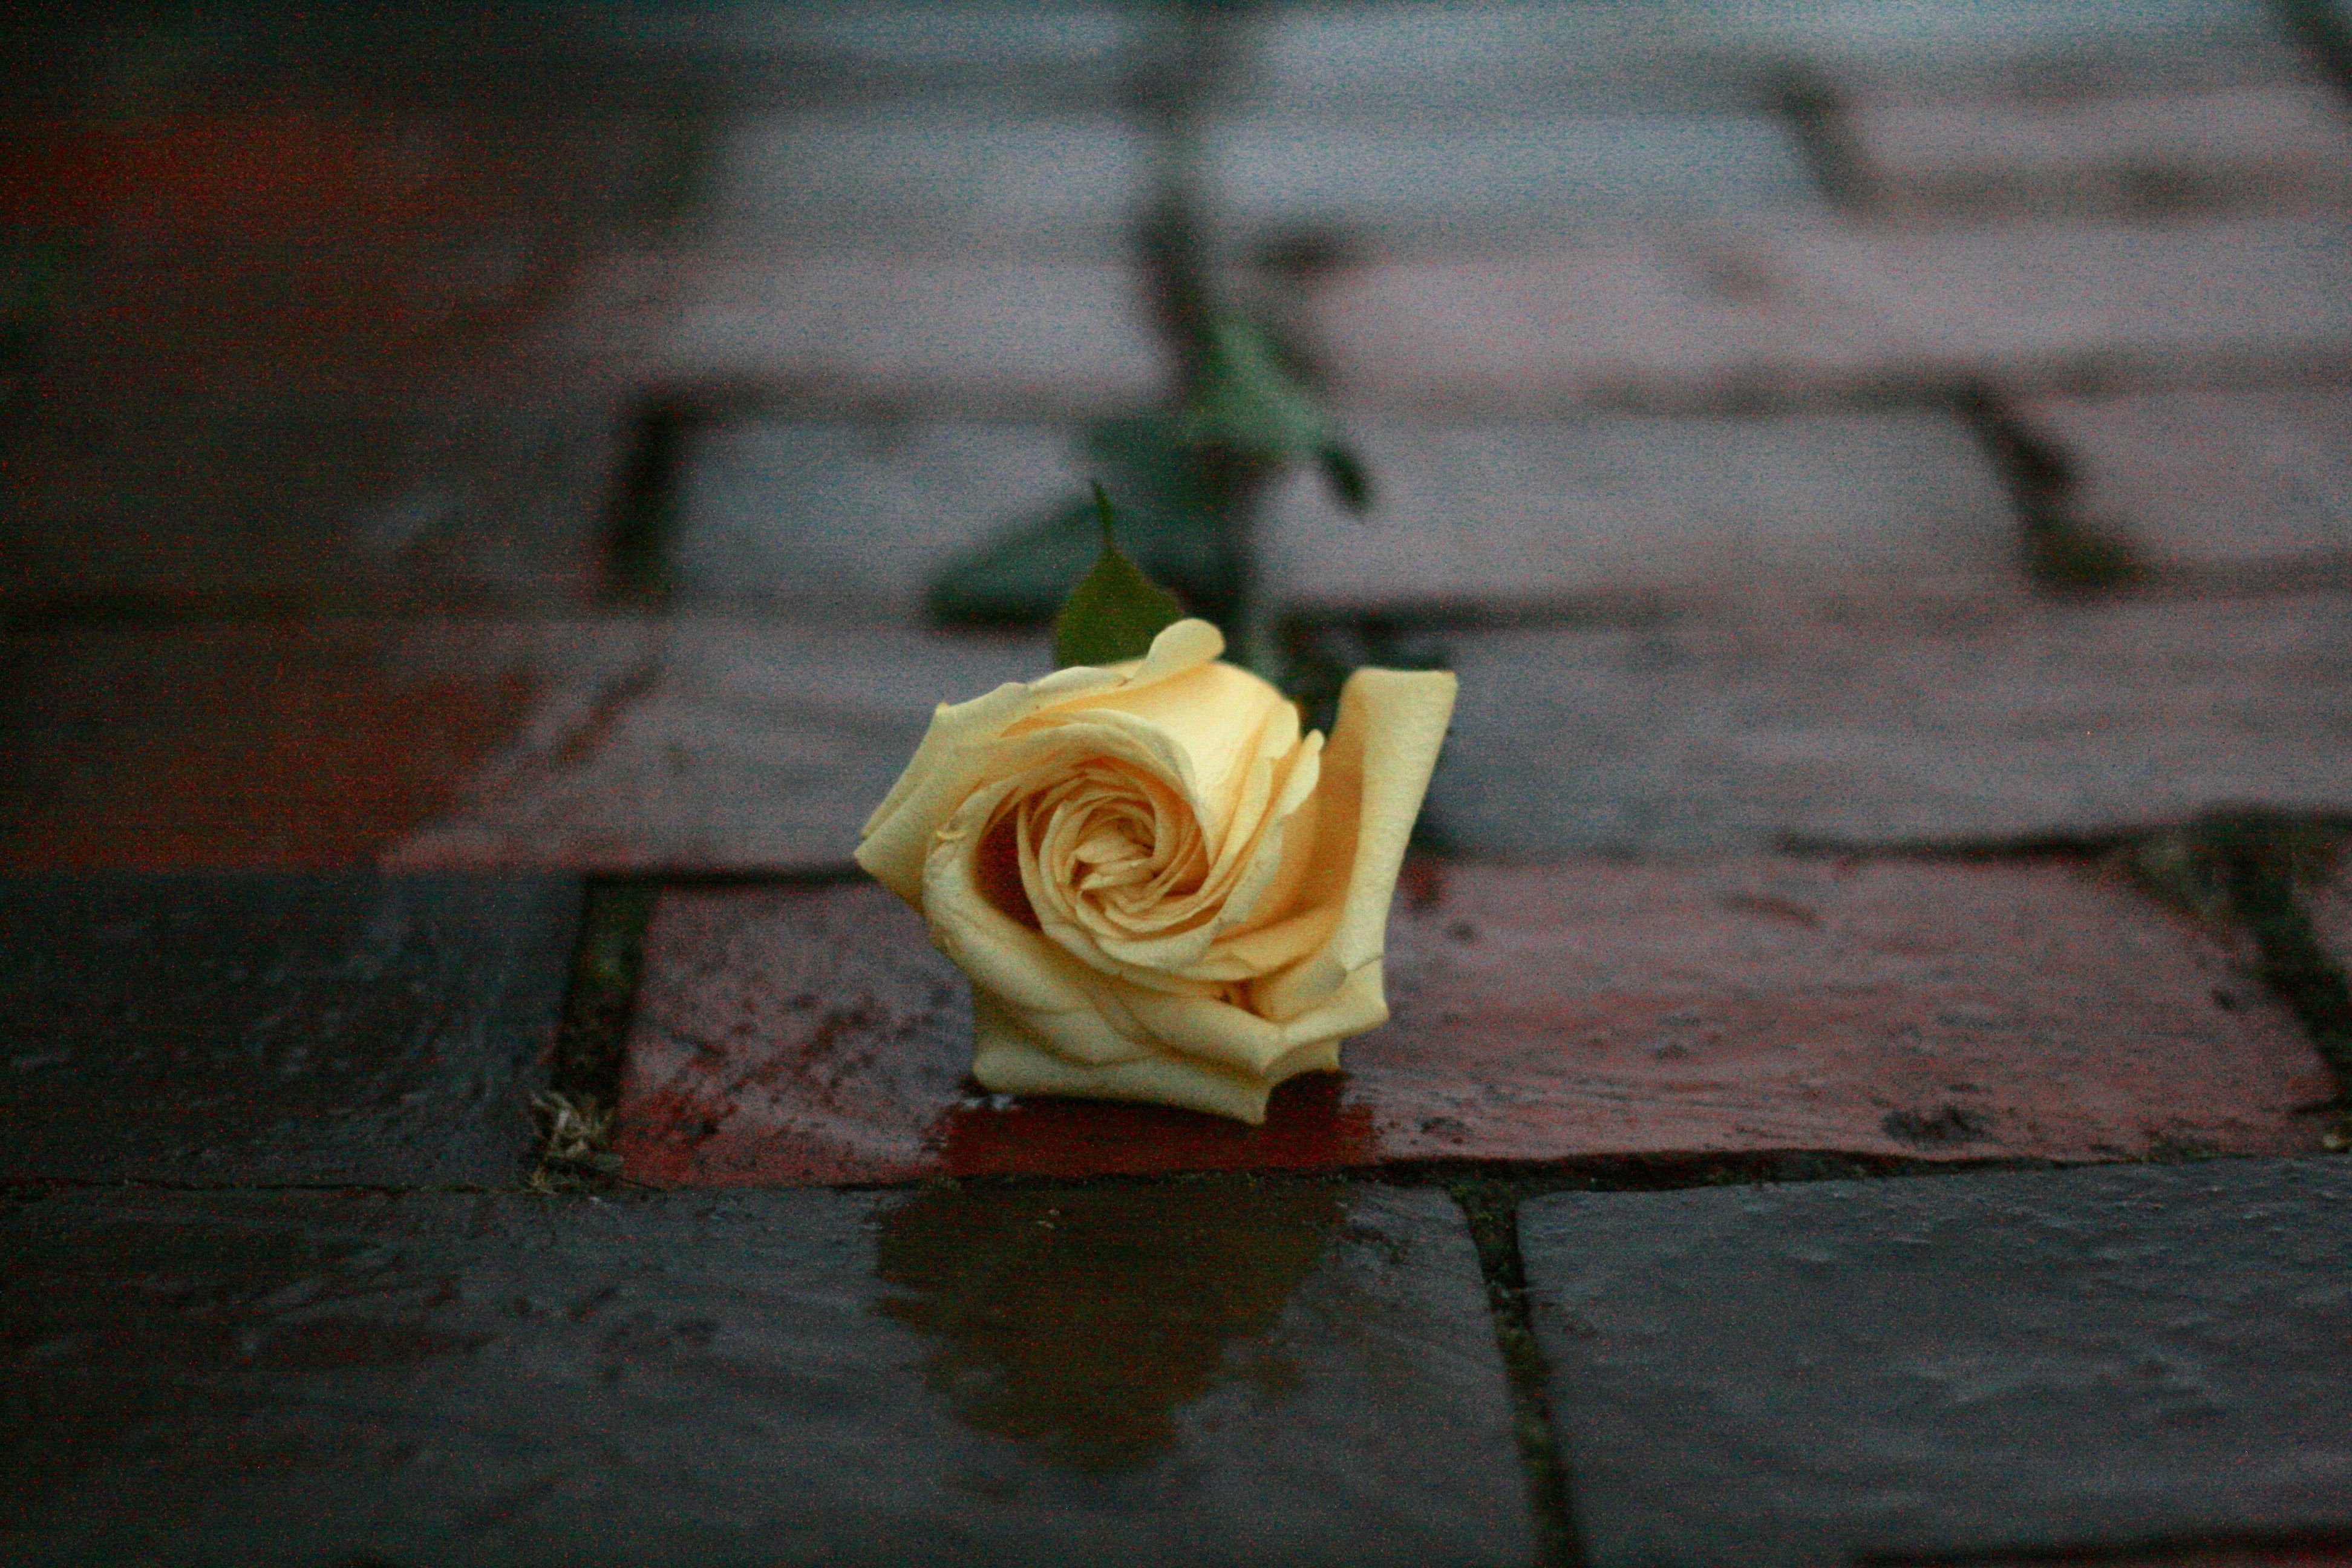 yellow rose flower on surface